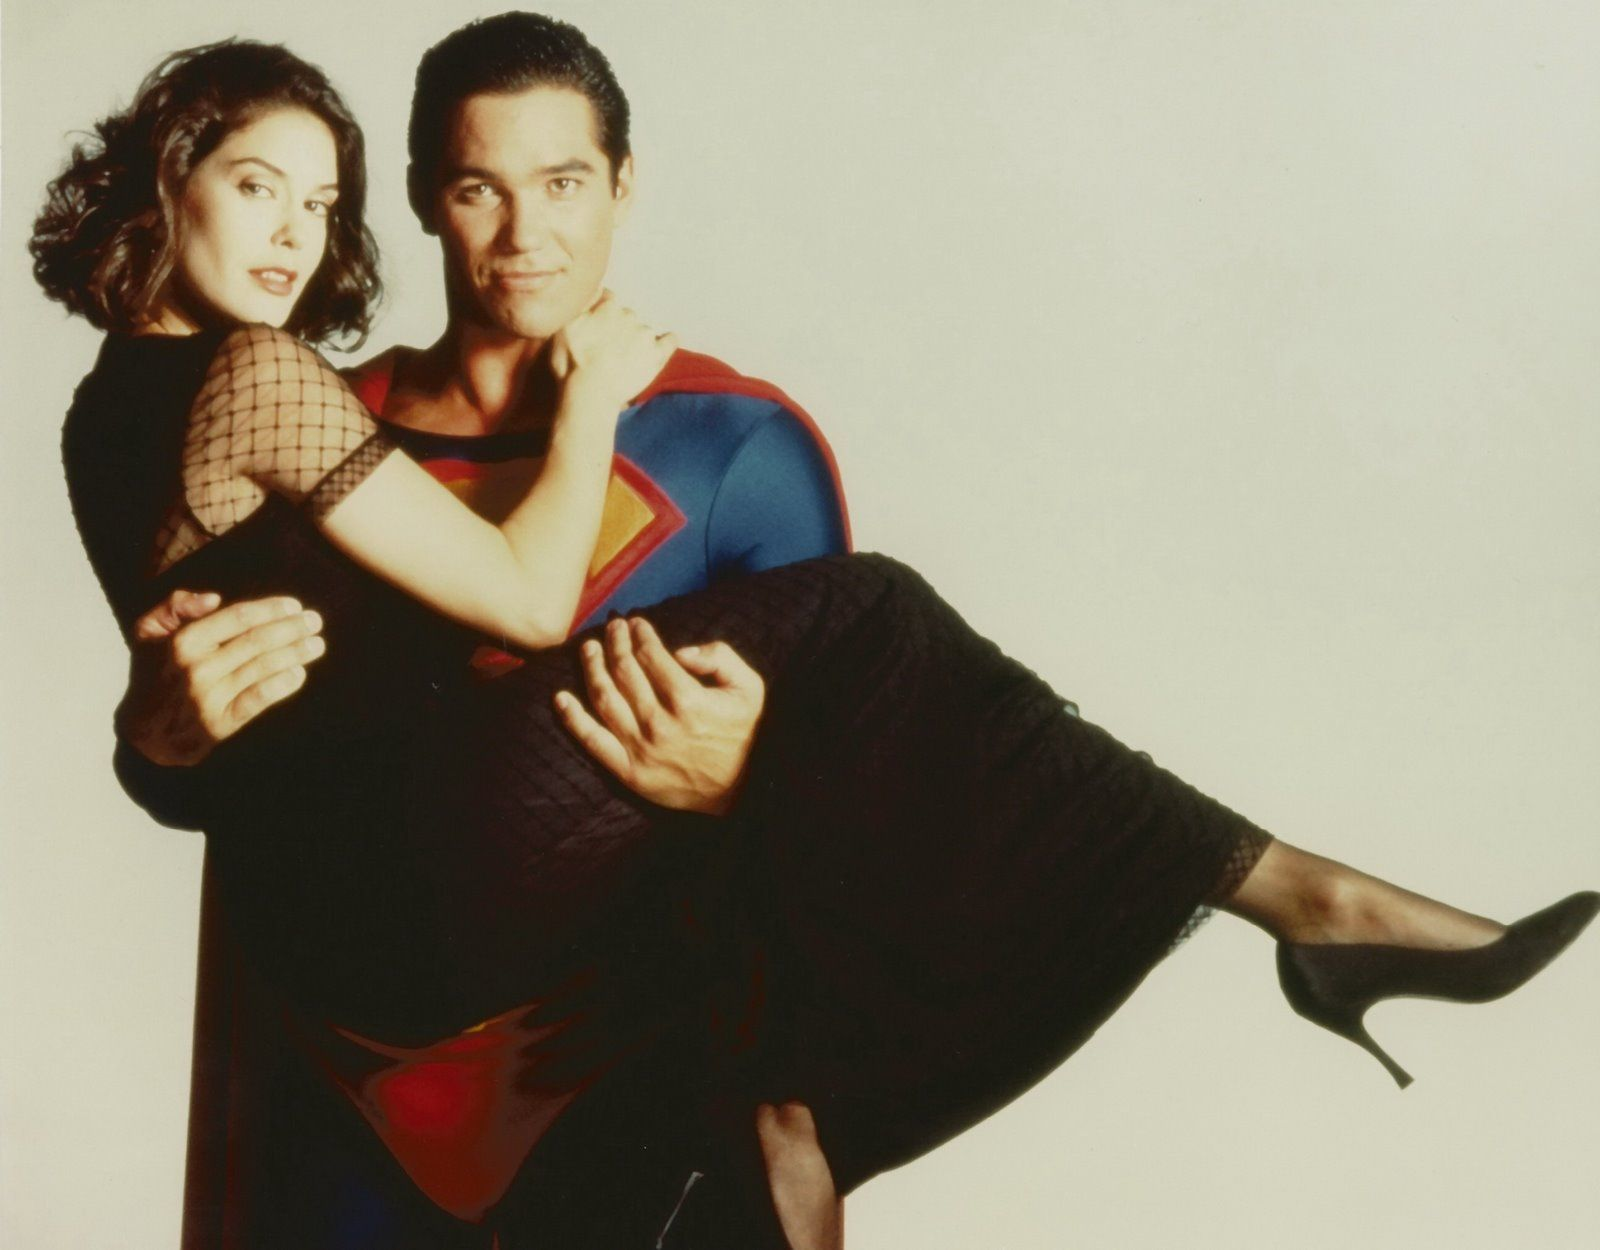 Book Girl: Art Work of the Day: Lois and Clark